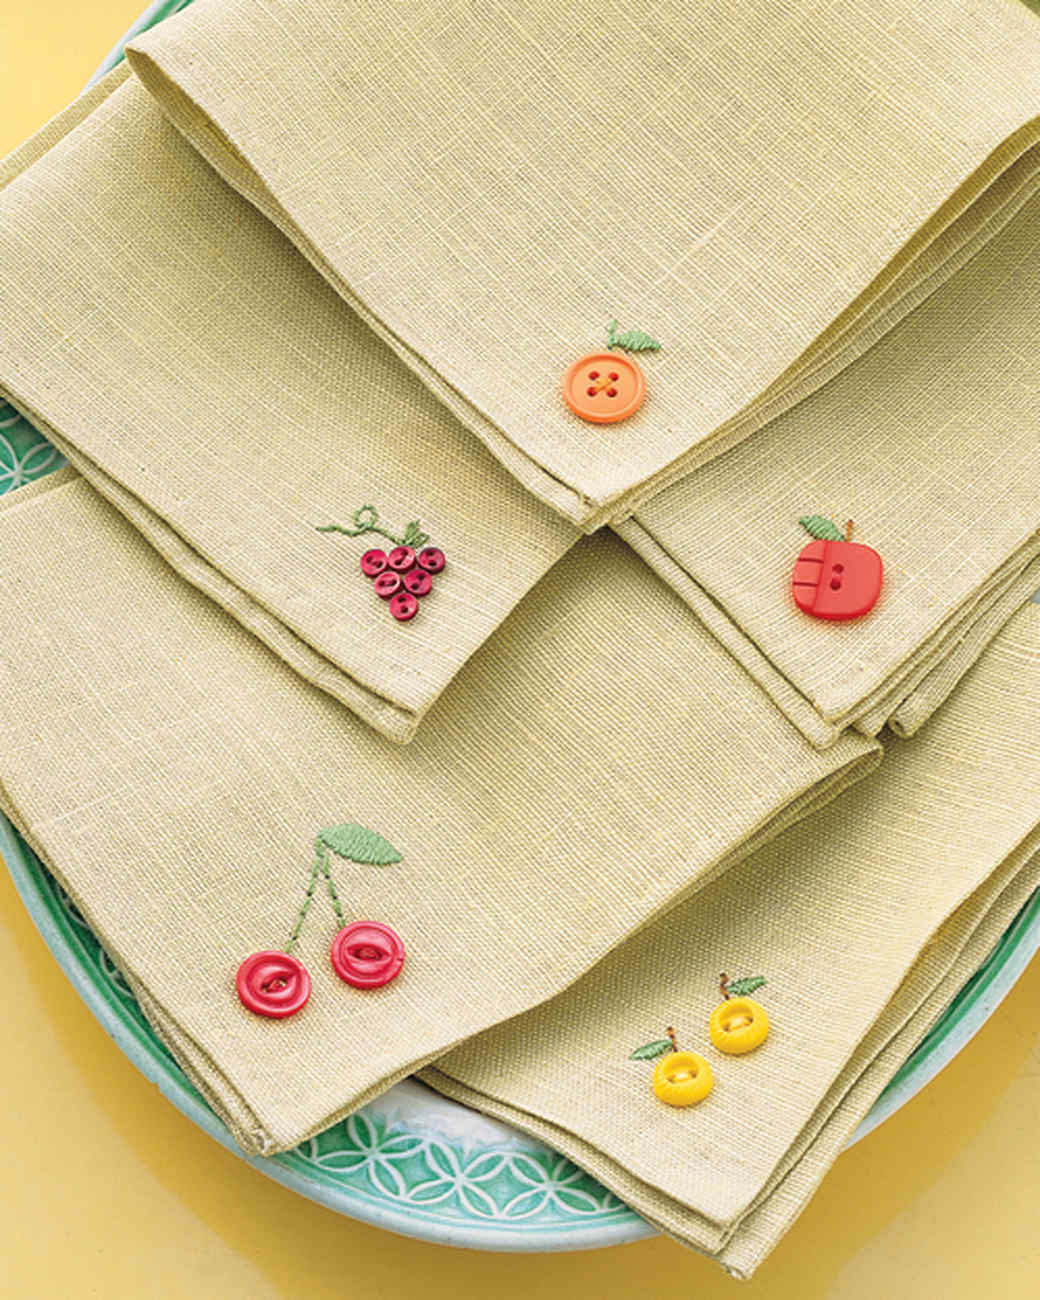 ms_sewing_book_embroid_coaster_det.jpg